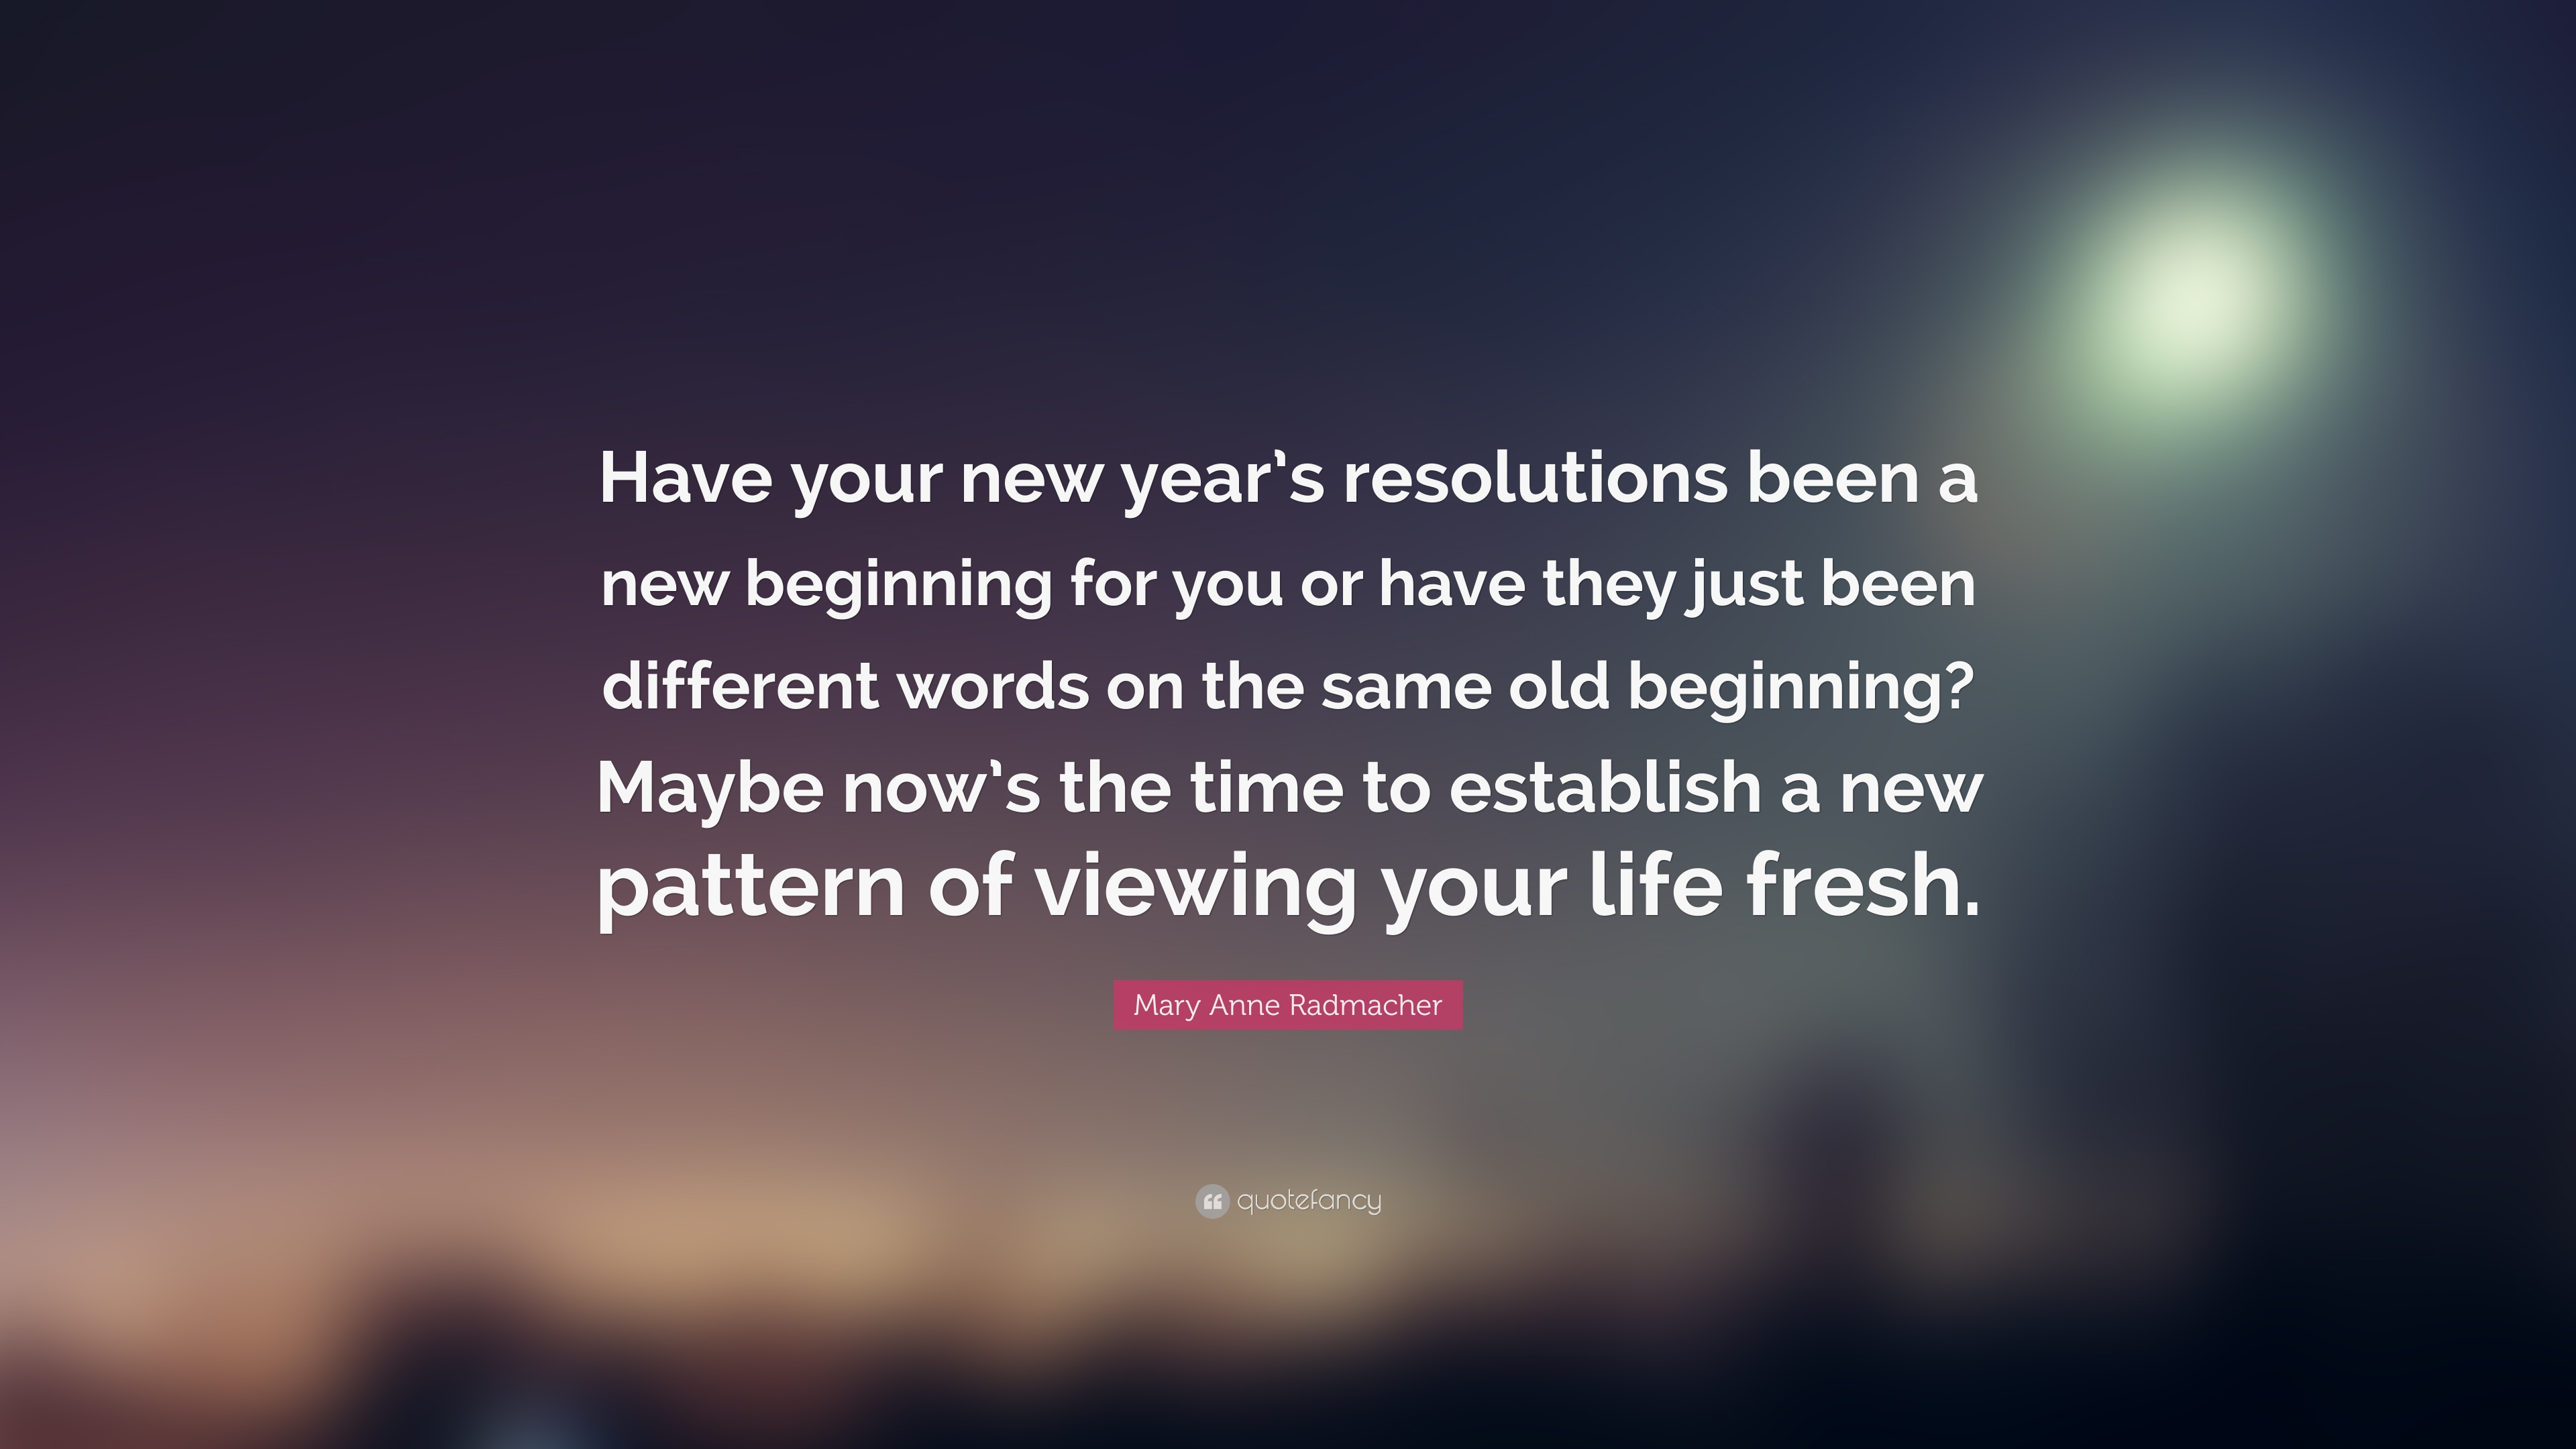 mary anne radmacher quote have your new years resolutions been a new beginning for